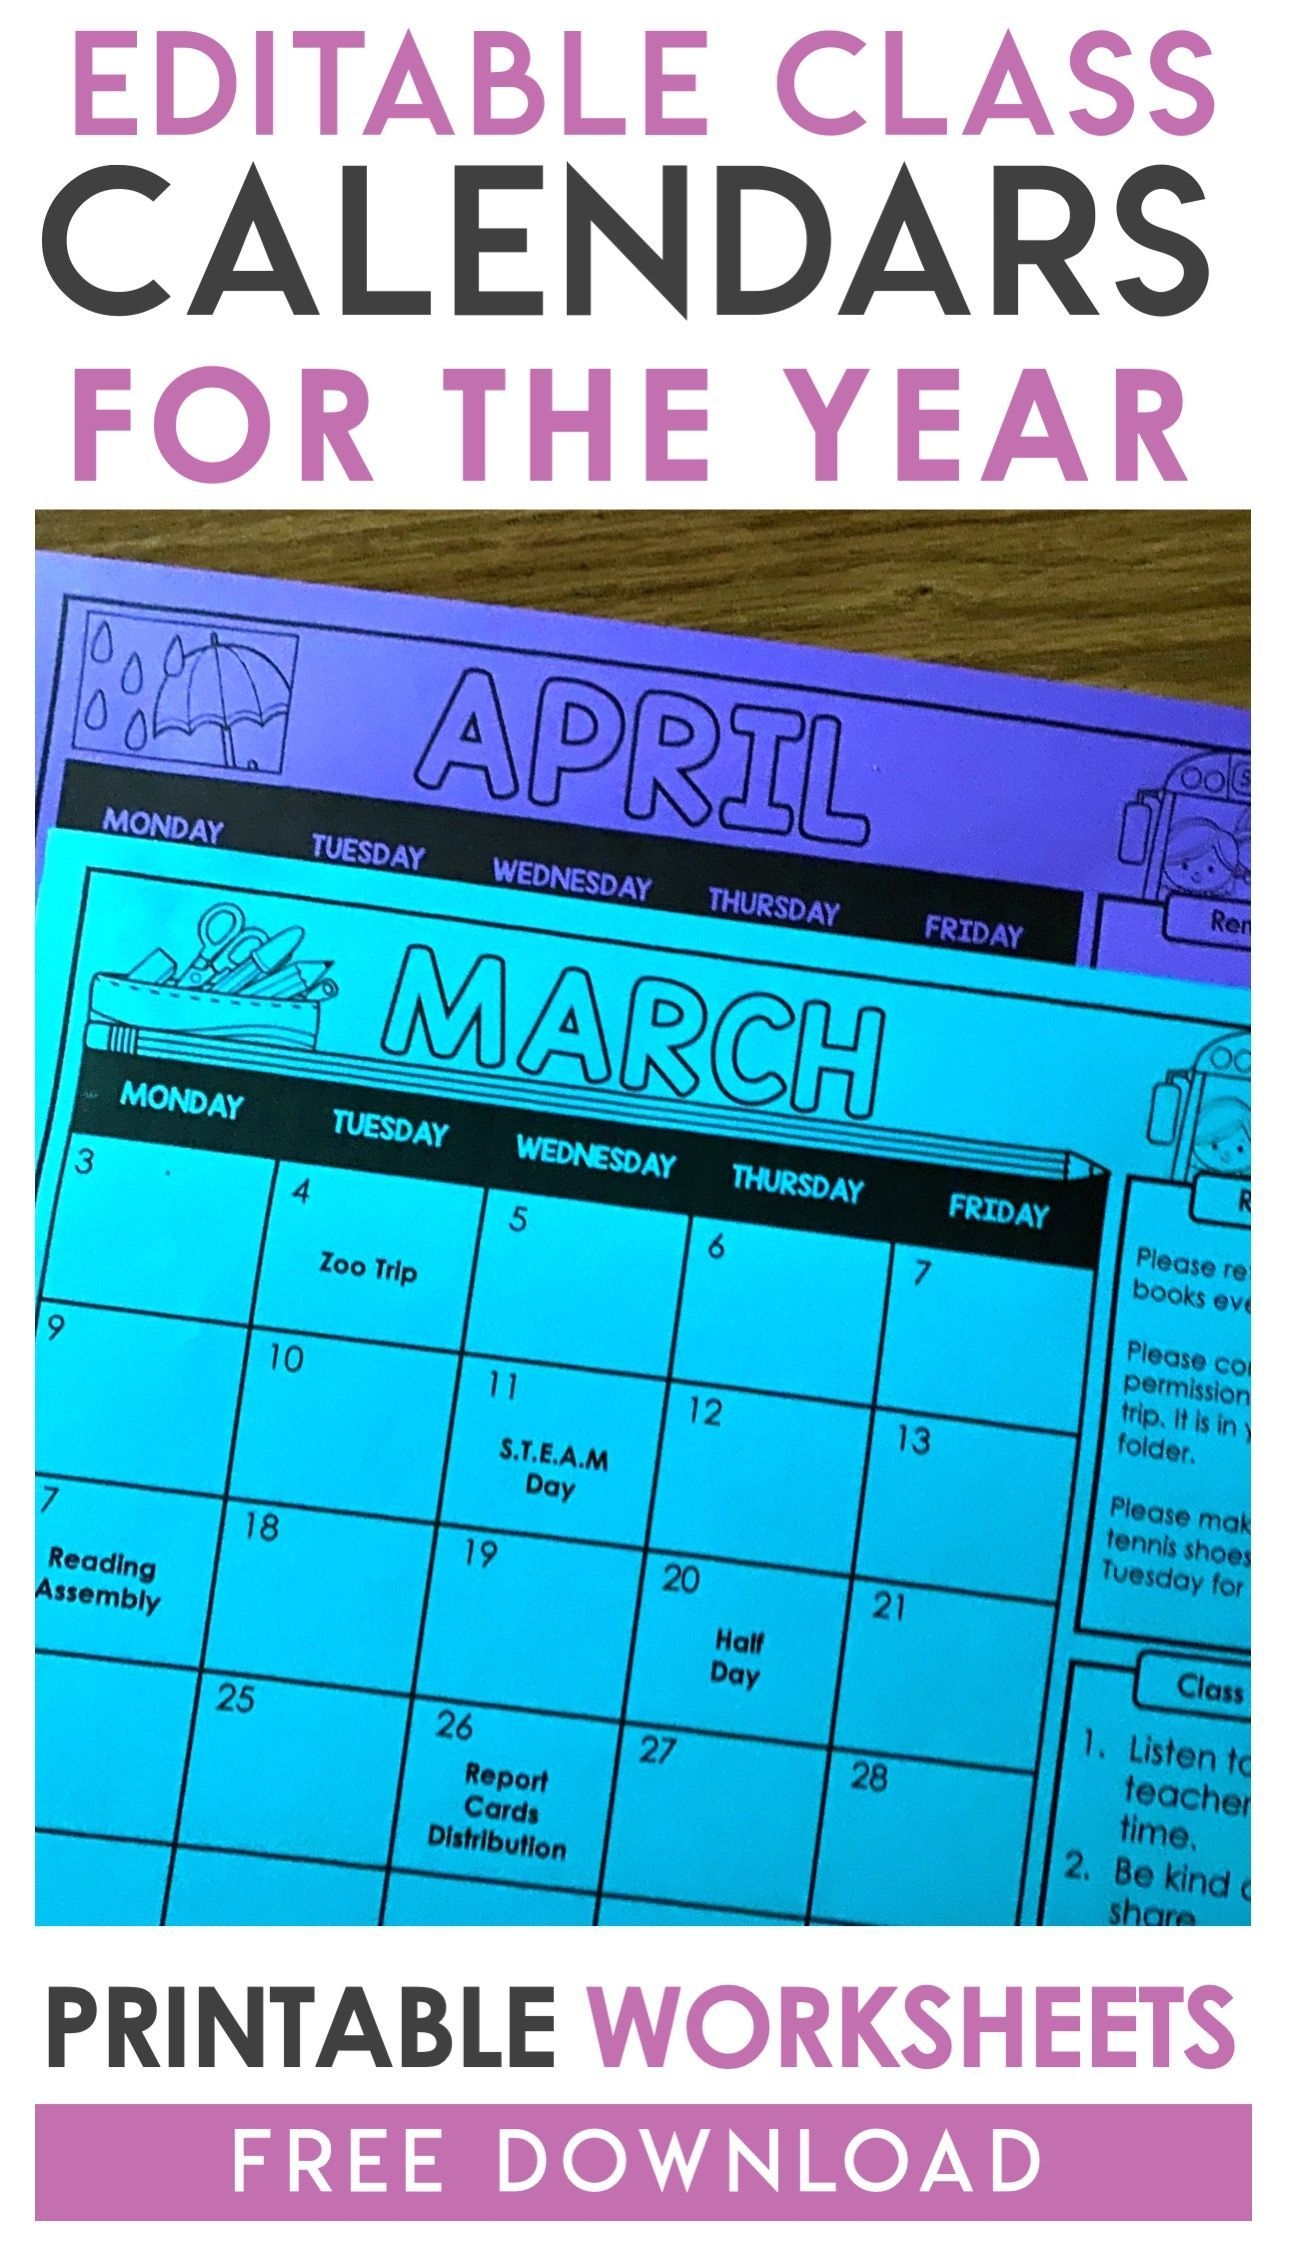 Free Editable Monthly Class Calendars In 2020 (With Images